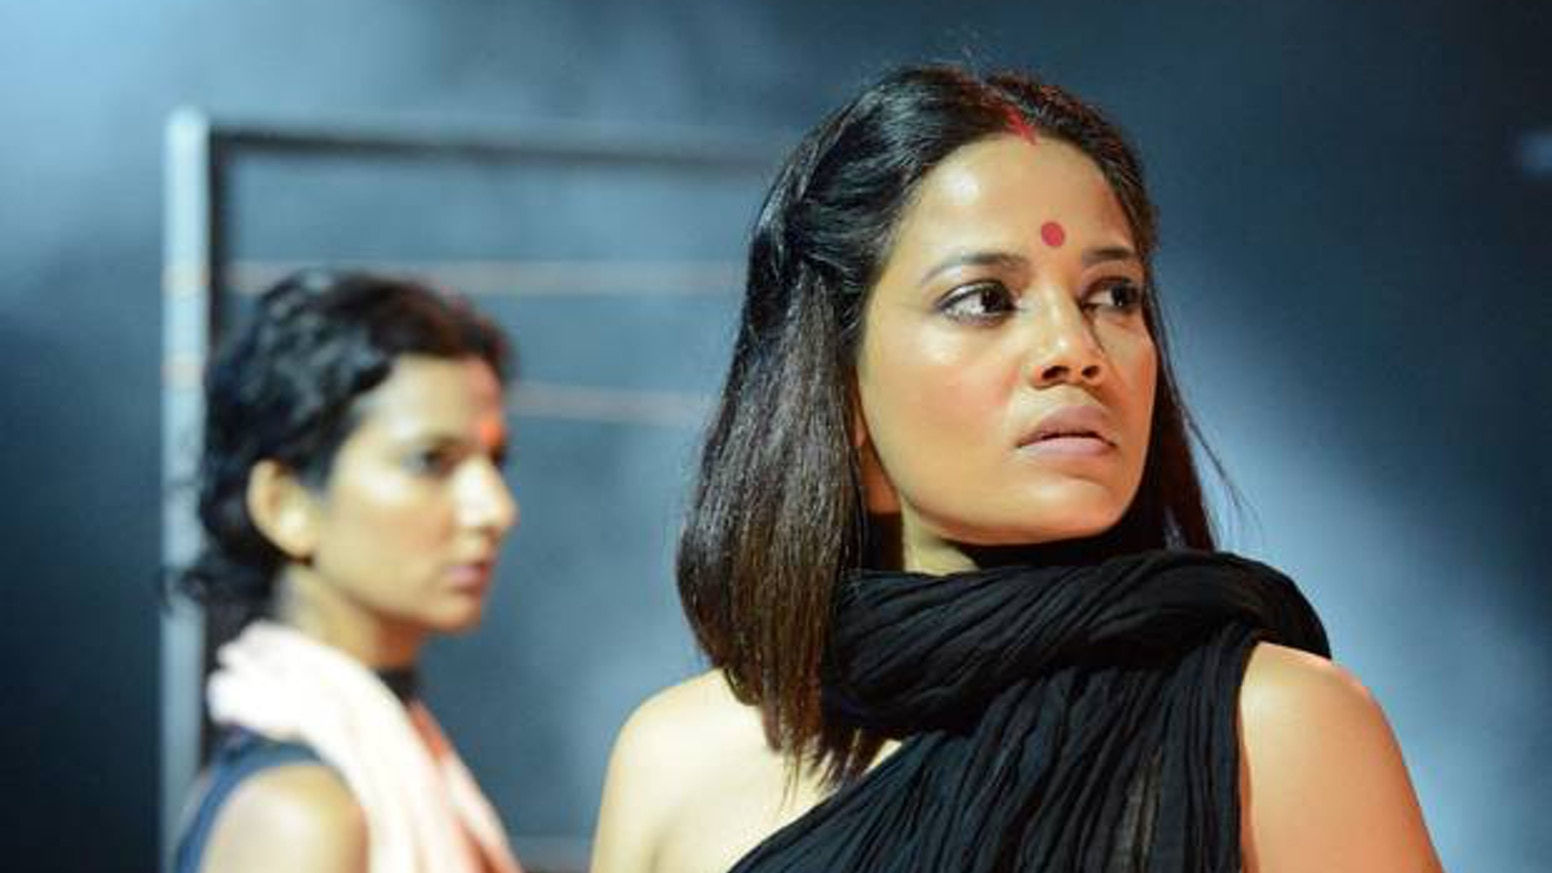 NIRBHAYA - Breaking the silence about violence against women by